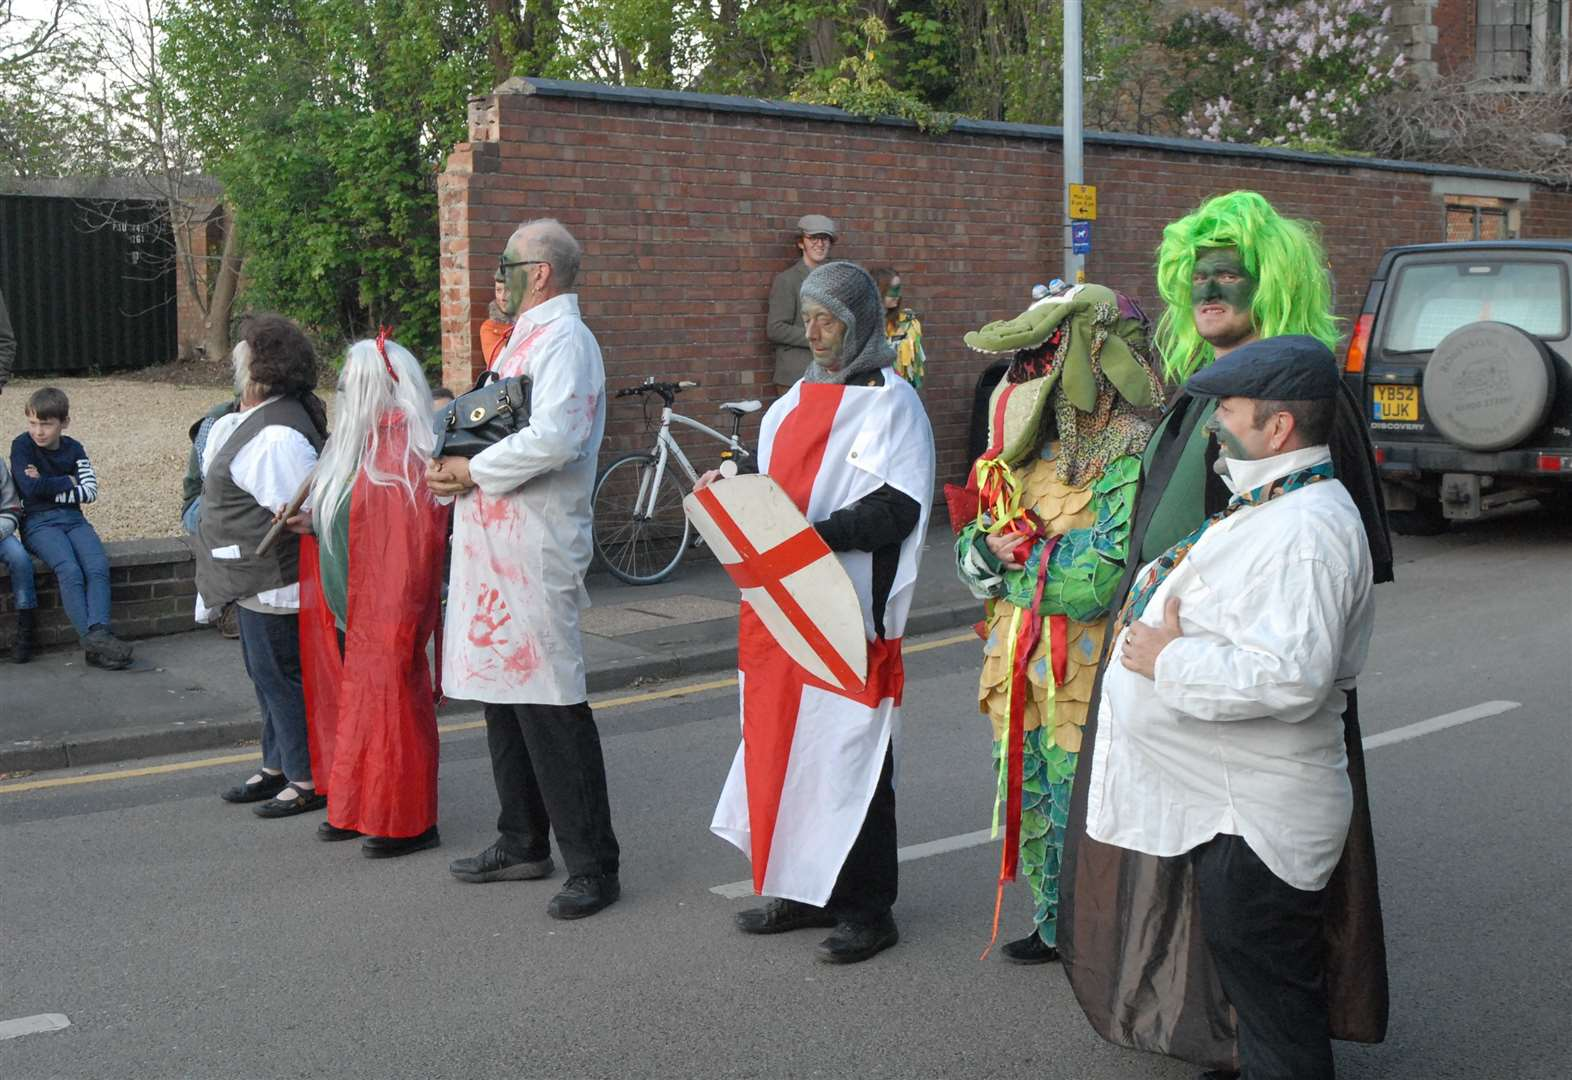 Traditional event in Bourne raises the dough